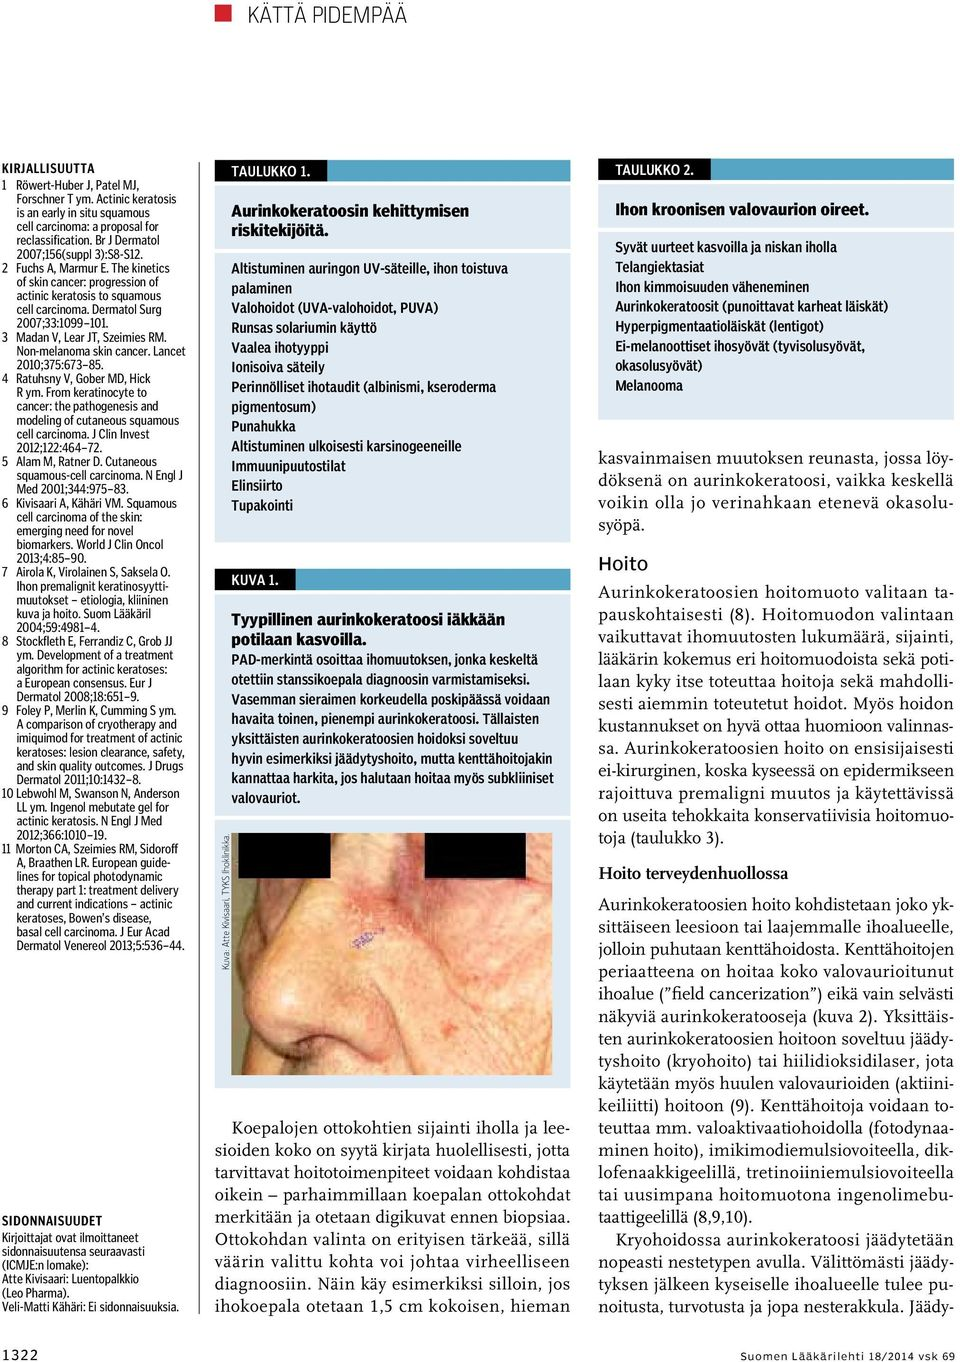 Non-melanoma skin cancer. Lancet 2010;375:673 85. 4 Ratuhsny V, Gober MD, Hick R ym. From keratinocyte to cancer: the pathogenesis and modeling of cutaneous squamous cell carcinoma.